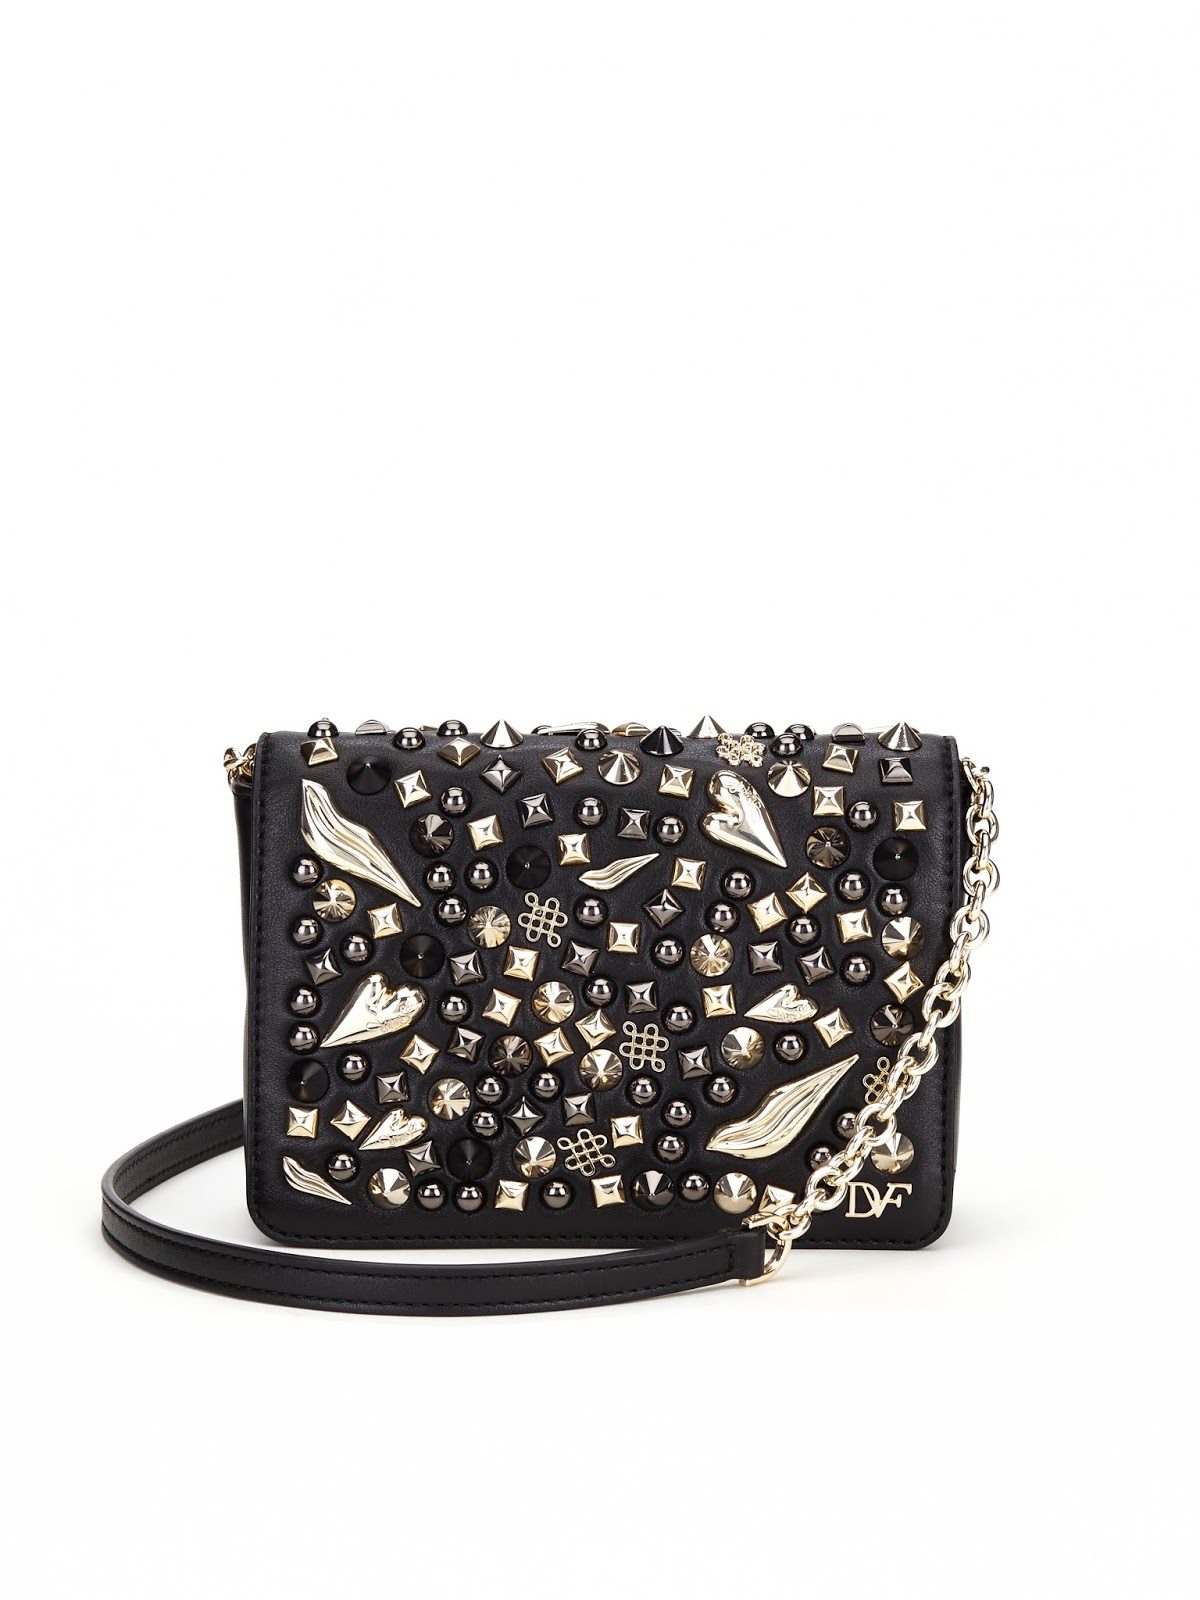 DVF Does Studs For the Holiday Season!